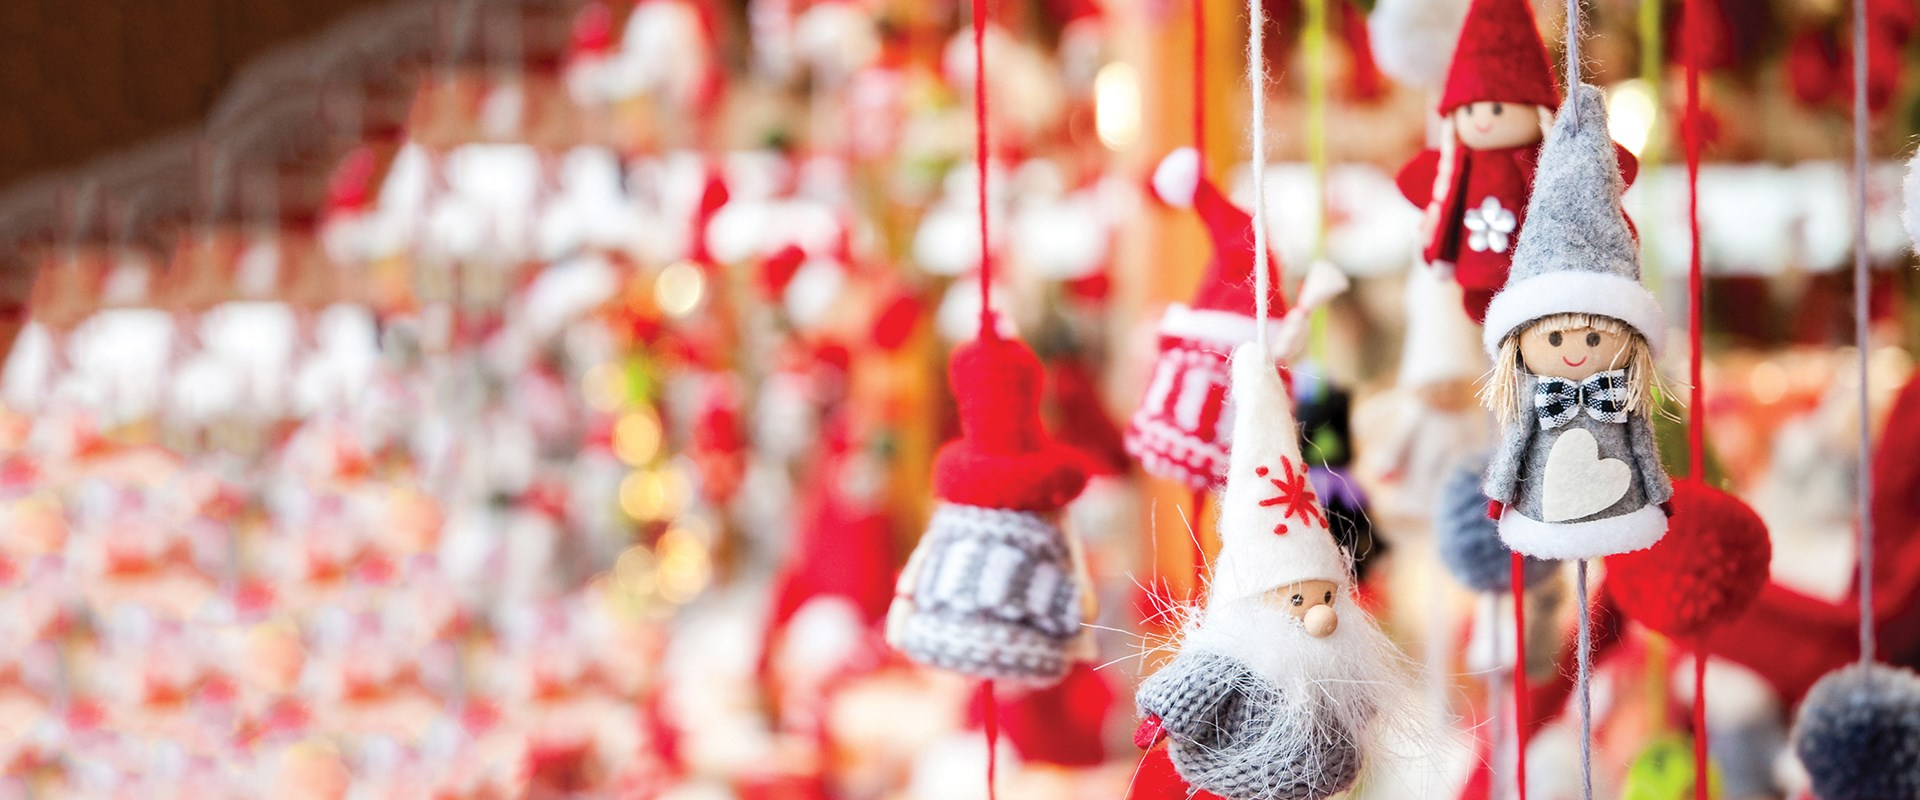 Christmas Markets In Europe 2019.Christmas Markets Of Europe 2019